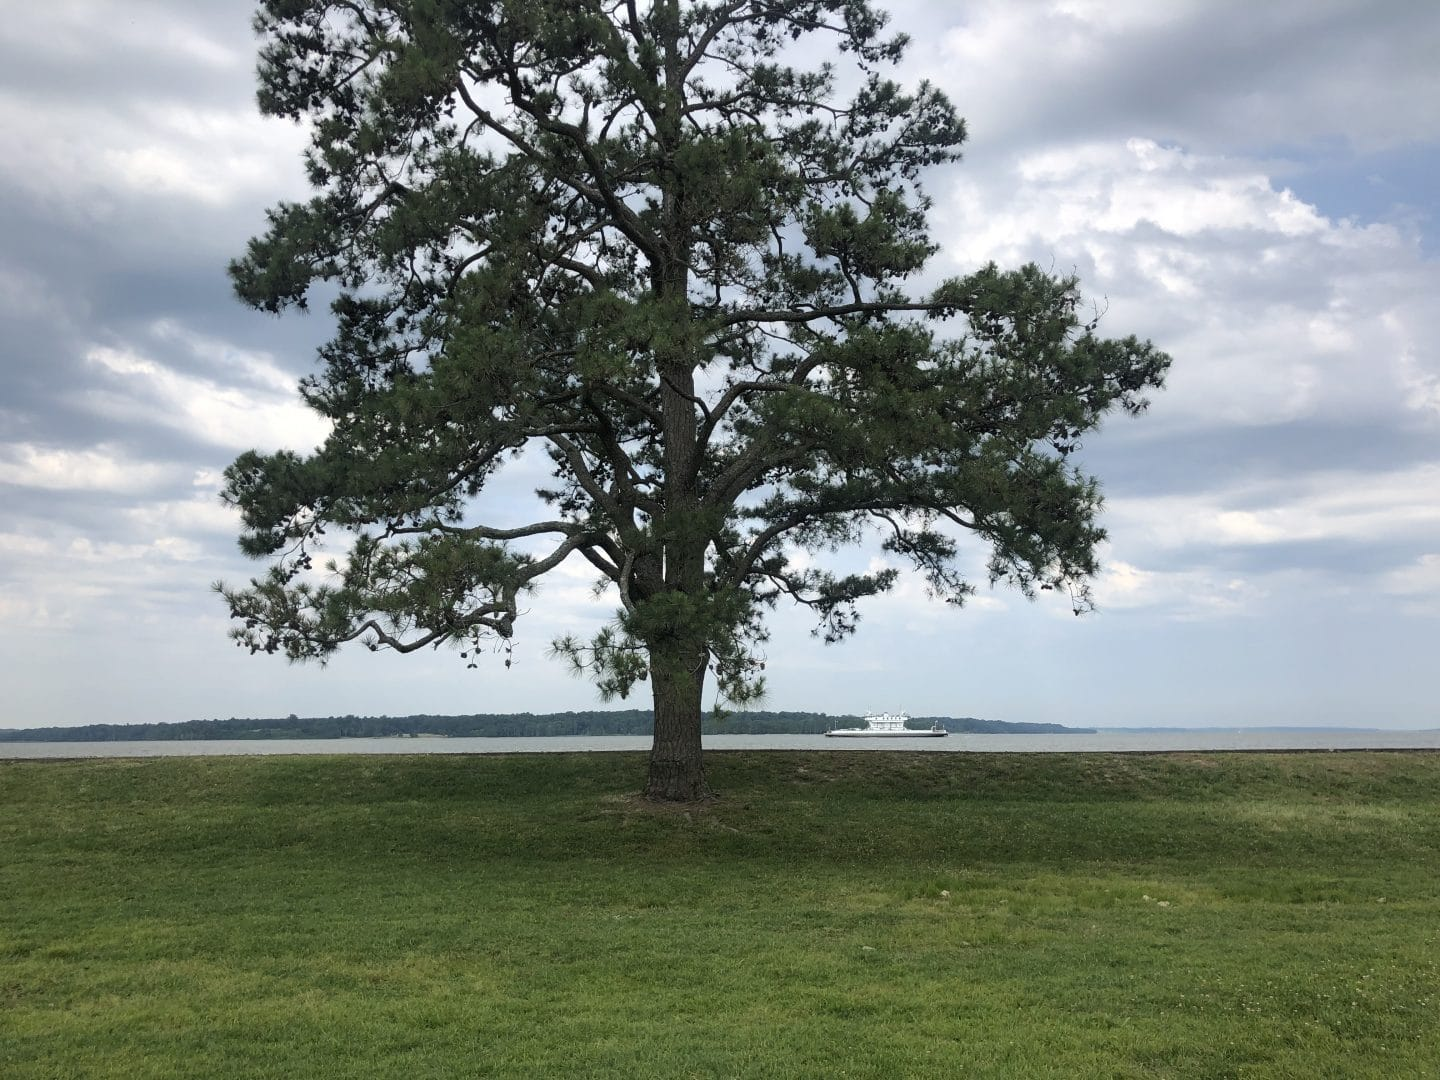 site of the first landing in Jamestown Virginia